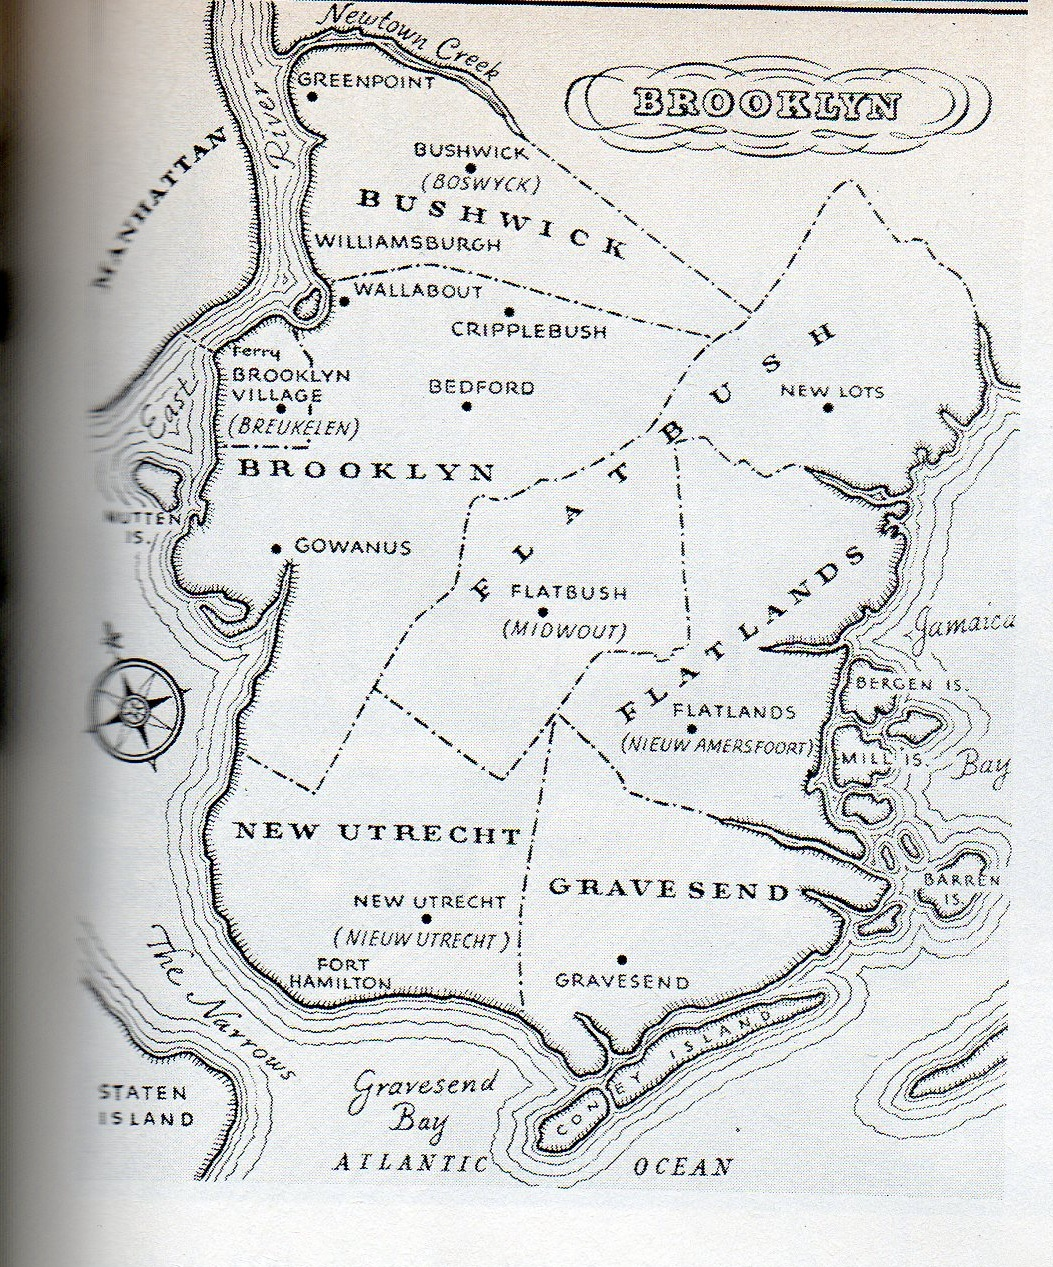 The six towns of brooklyn